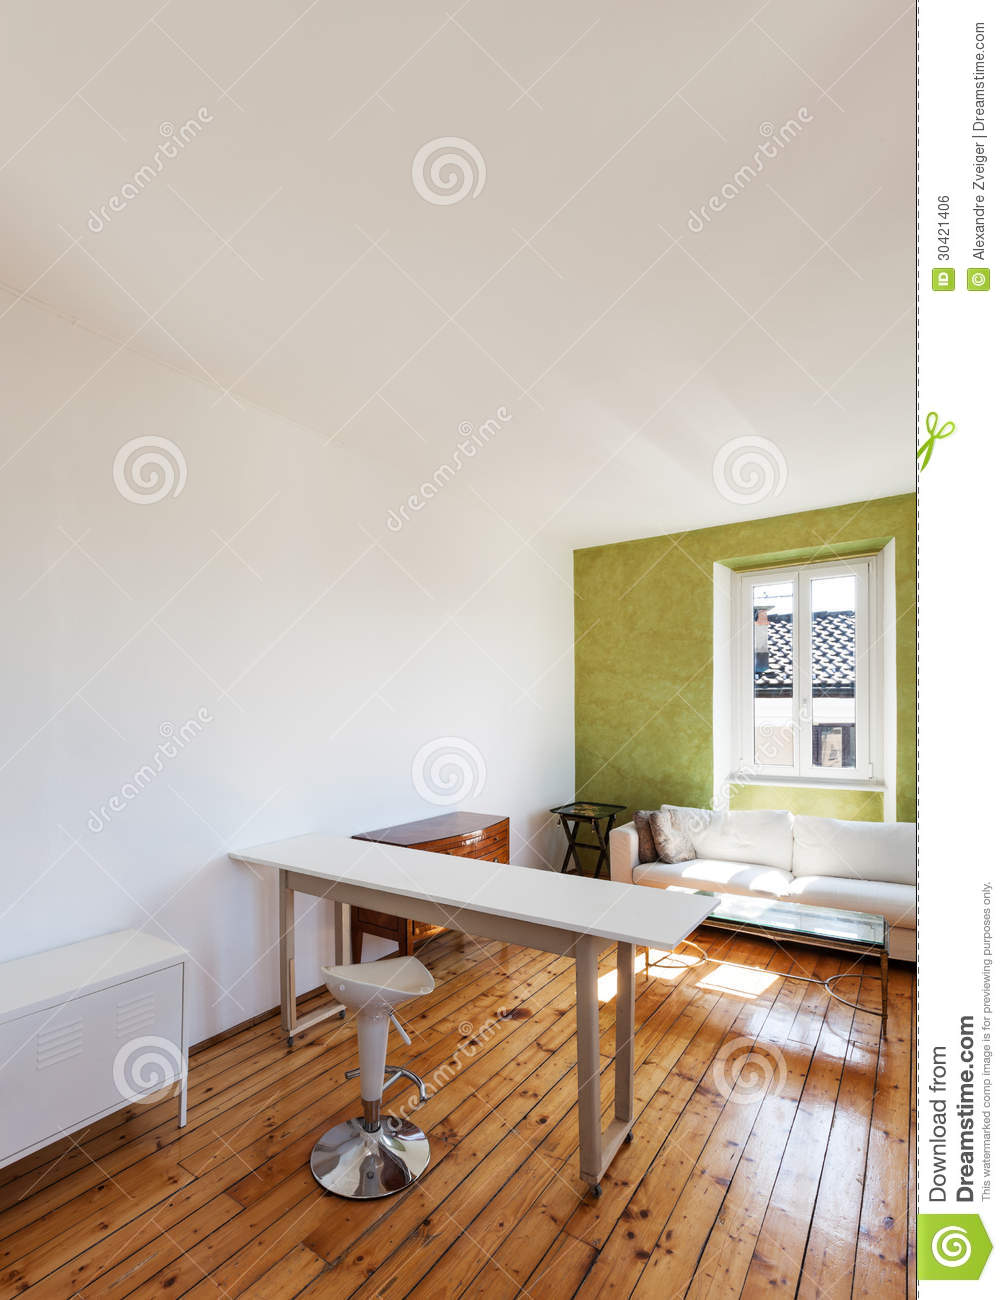 interior home room royalty free stock image image 30421406